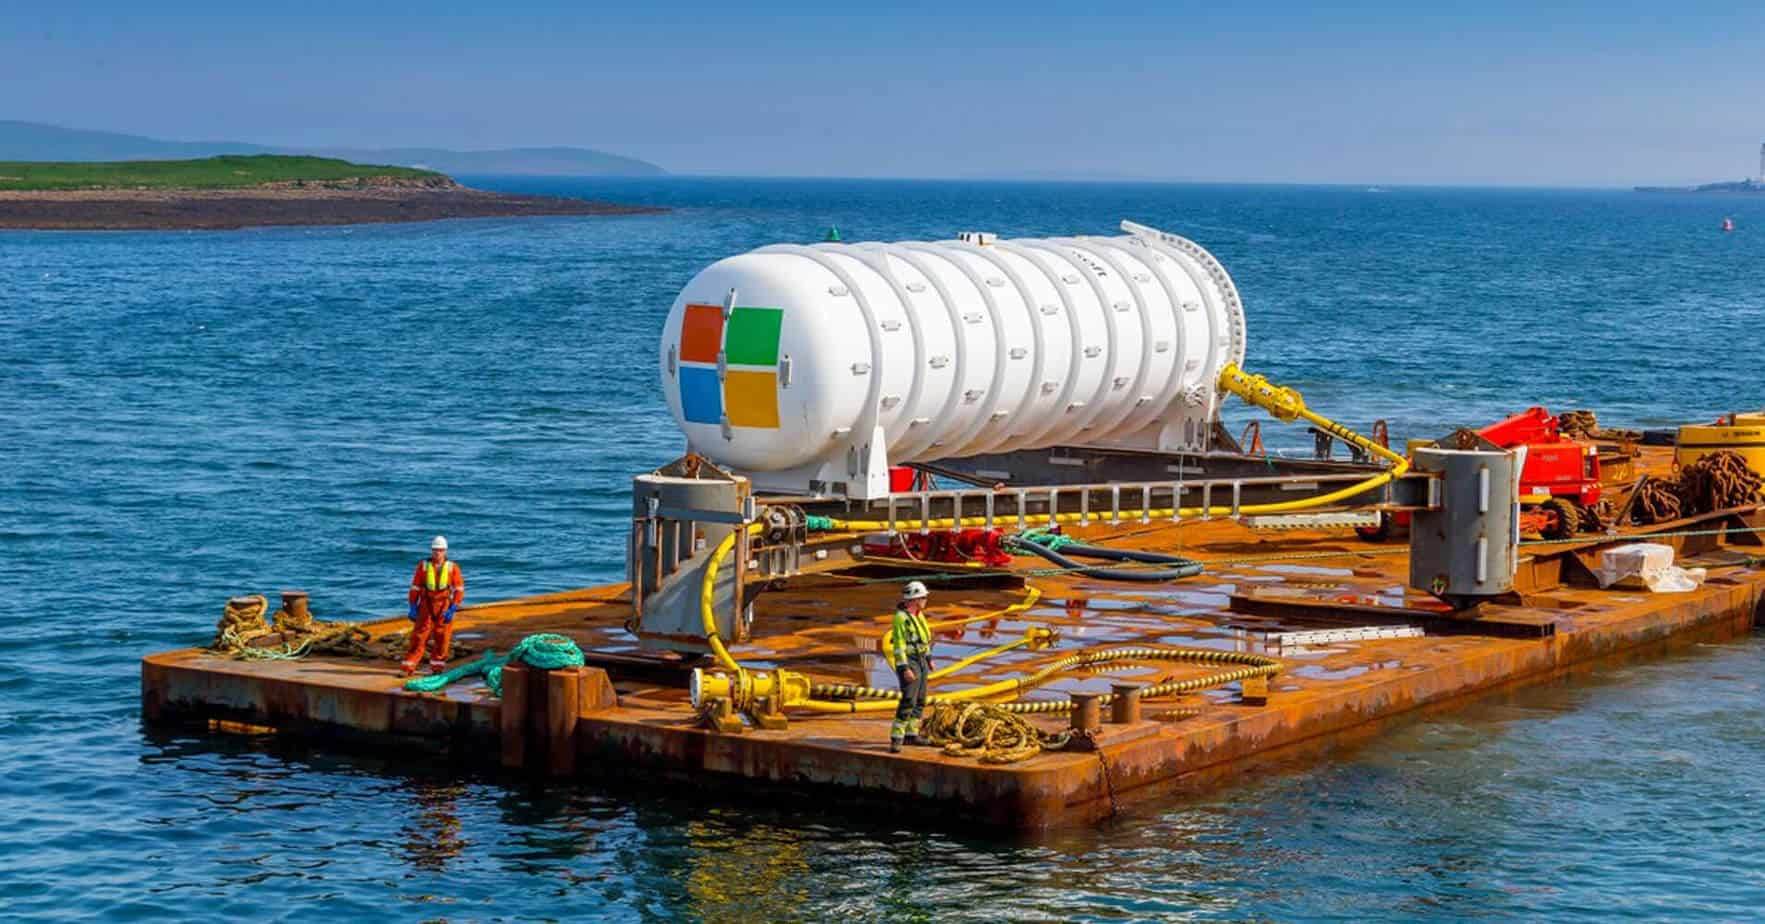 Microsoft's underwater server experiment resurfaces after 2 years